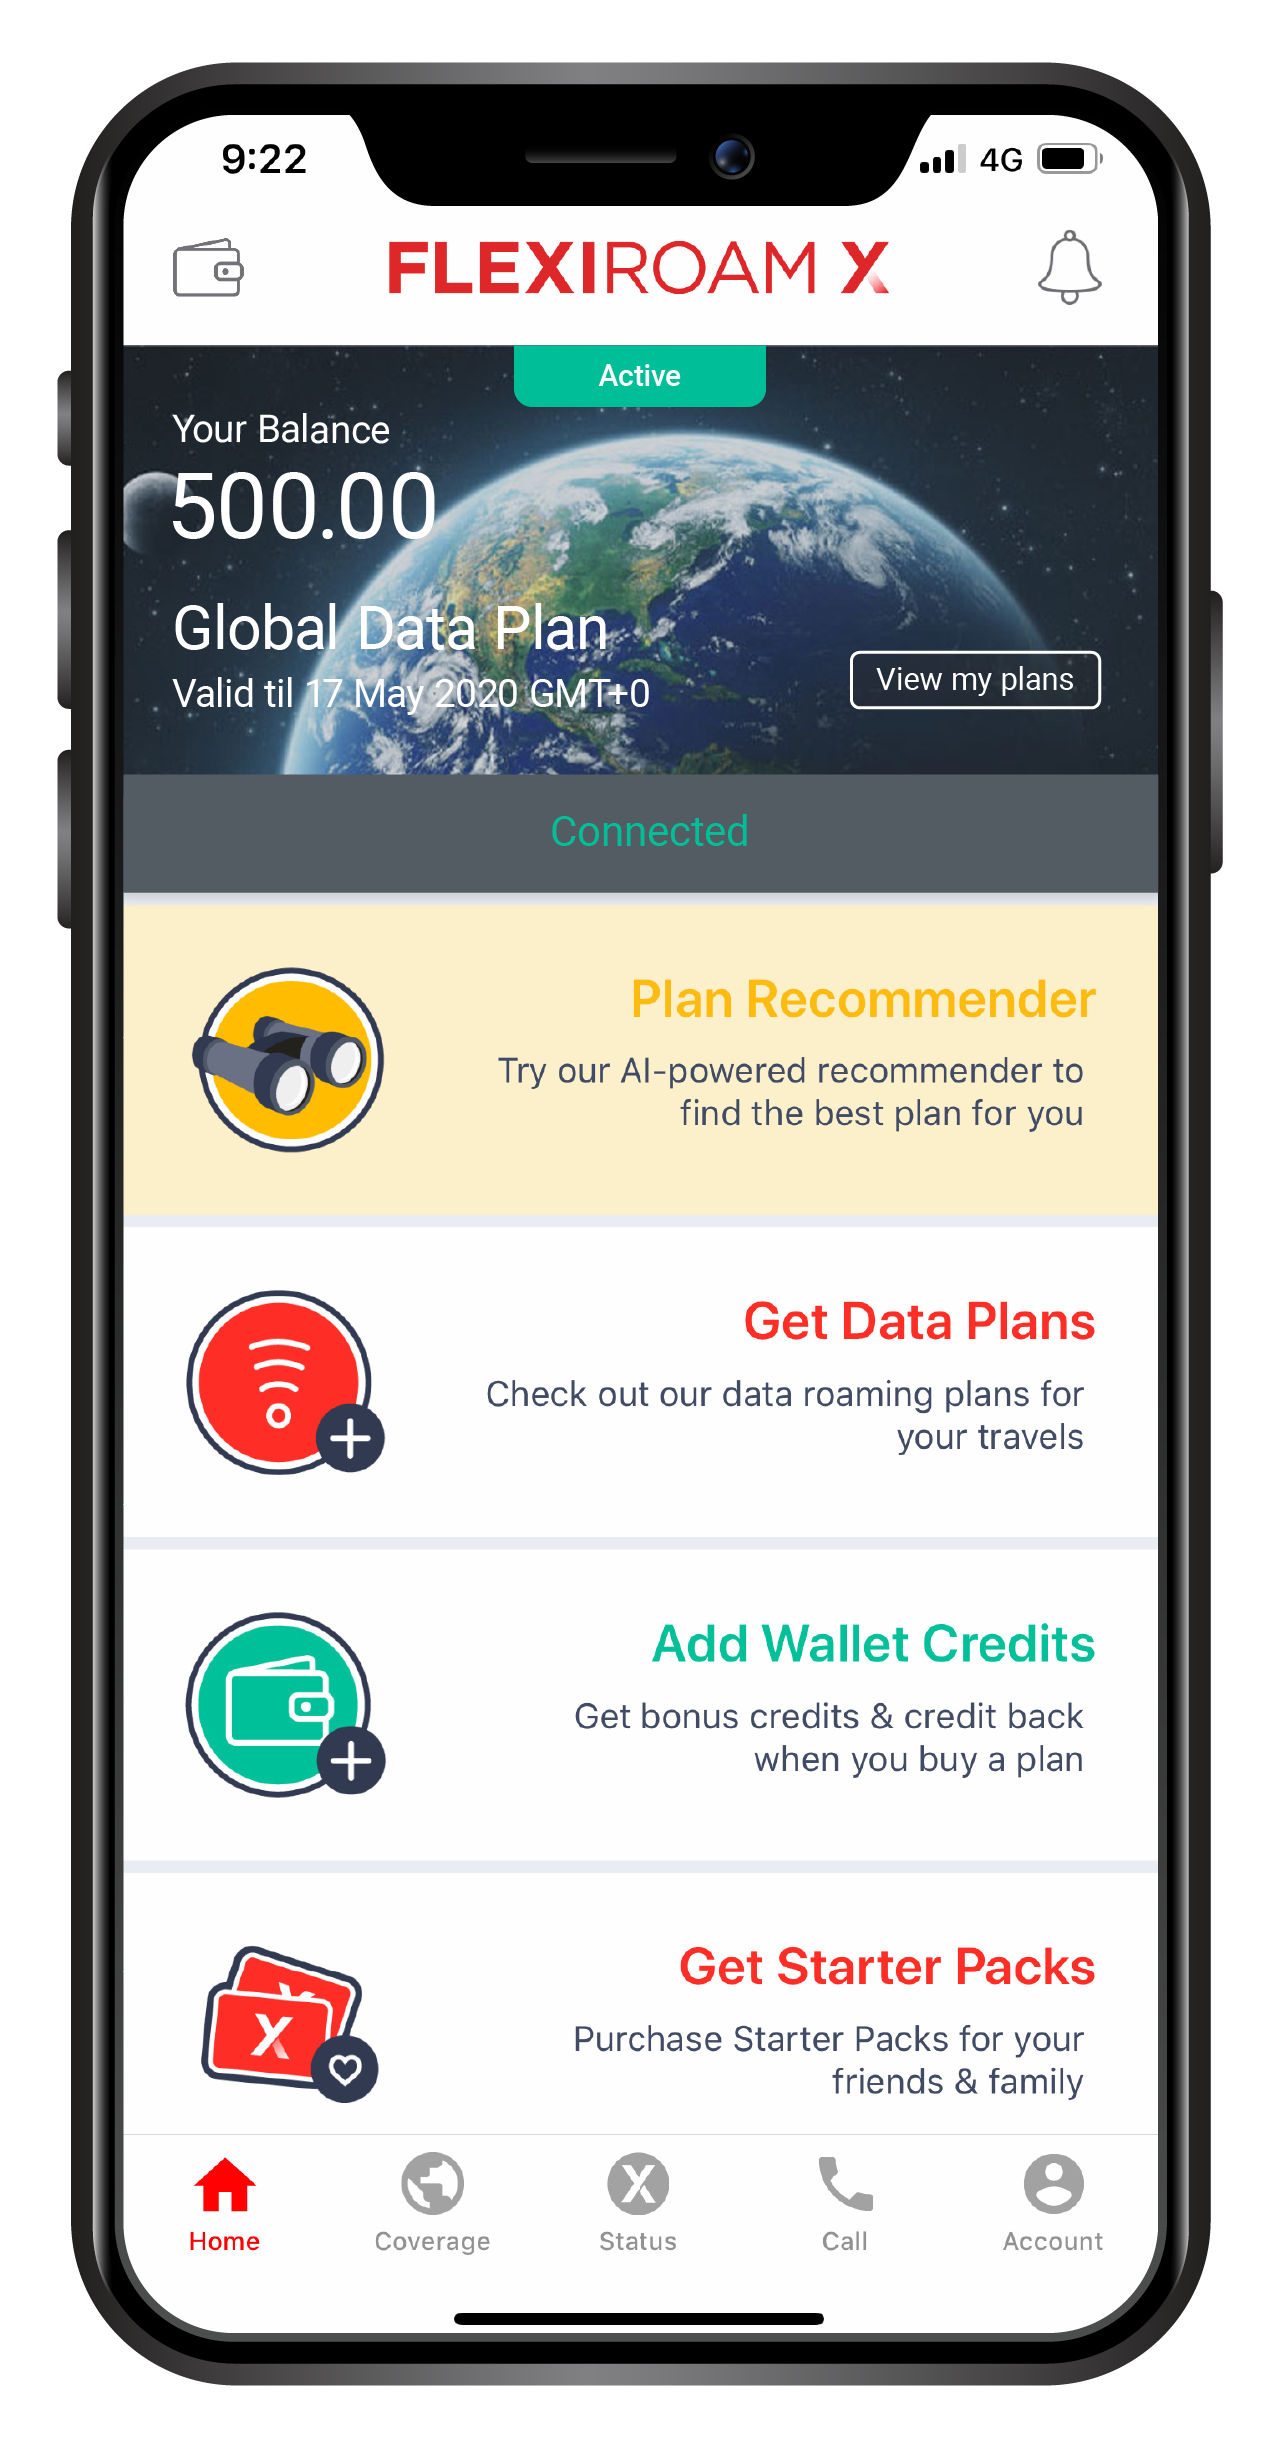 Plan Recommender is available on our App! Source: Flexiroam